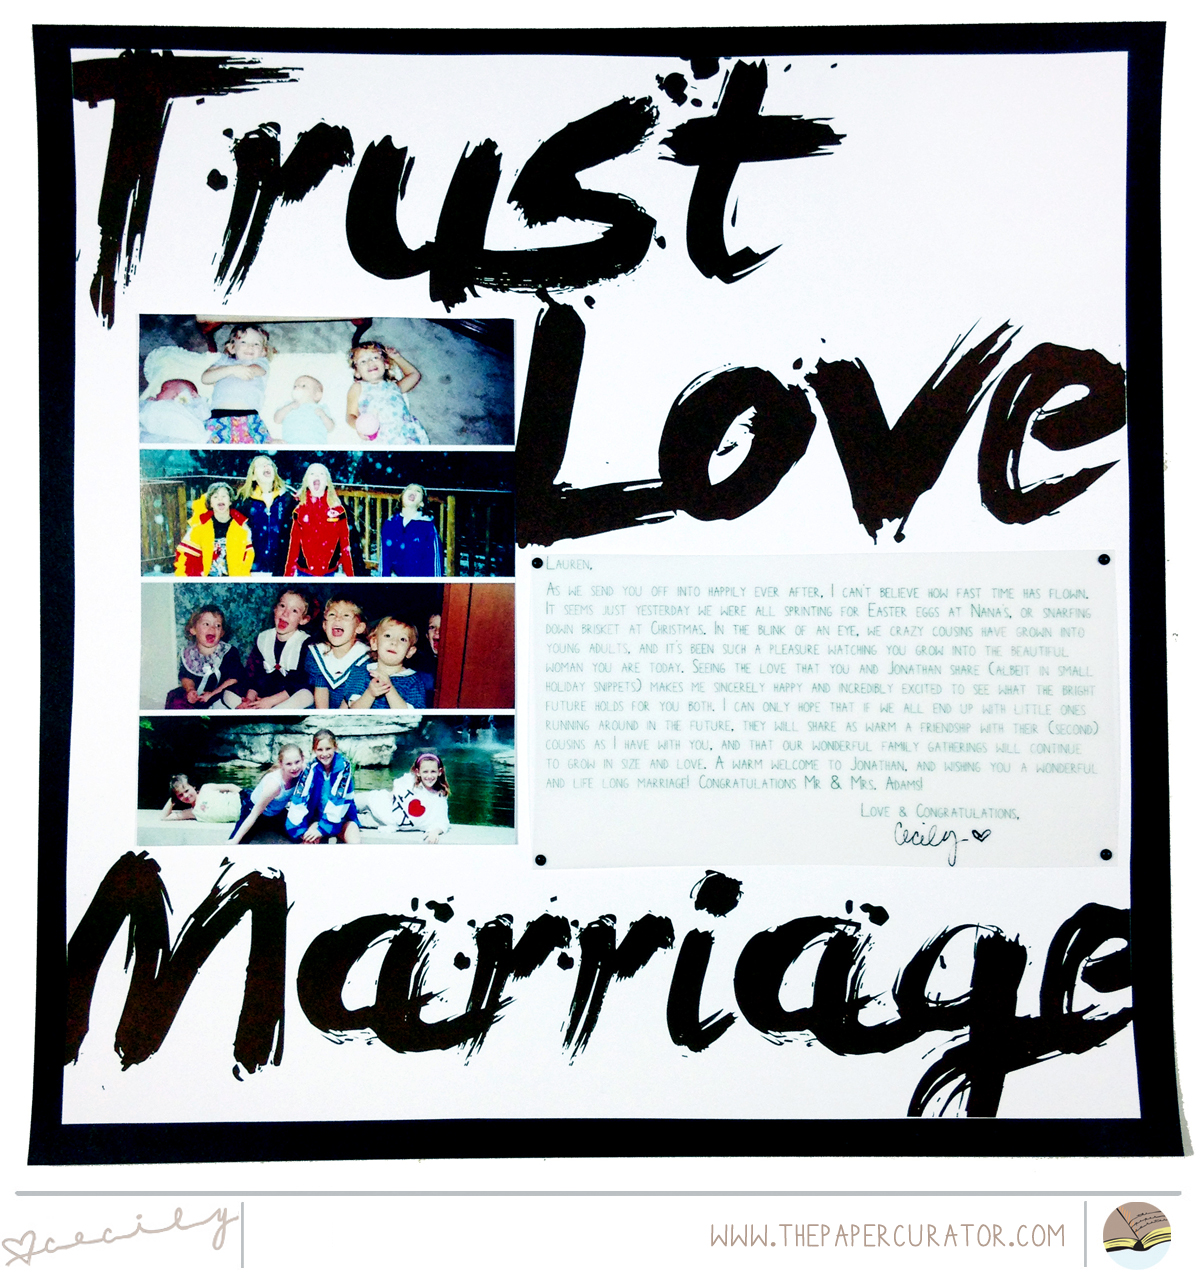 WEEKLY PAGE SKETCH WITH SCRAPBOOK LAYOUT 'TRUST LOVE MARRIAGE' | THE PAPER CURATOR